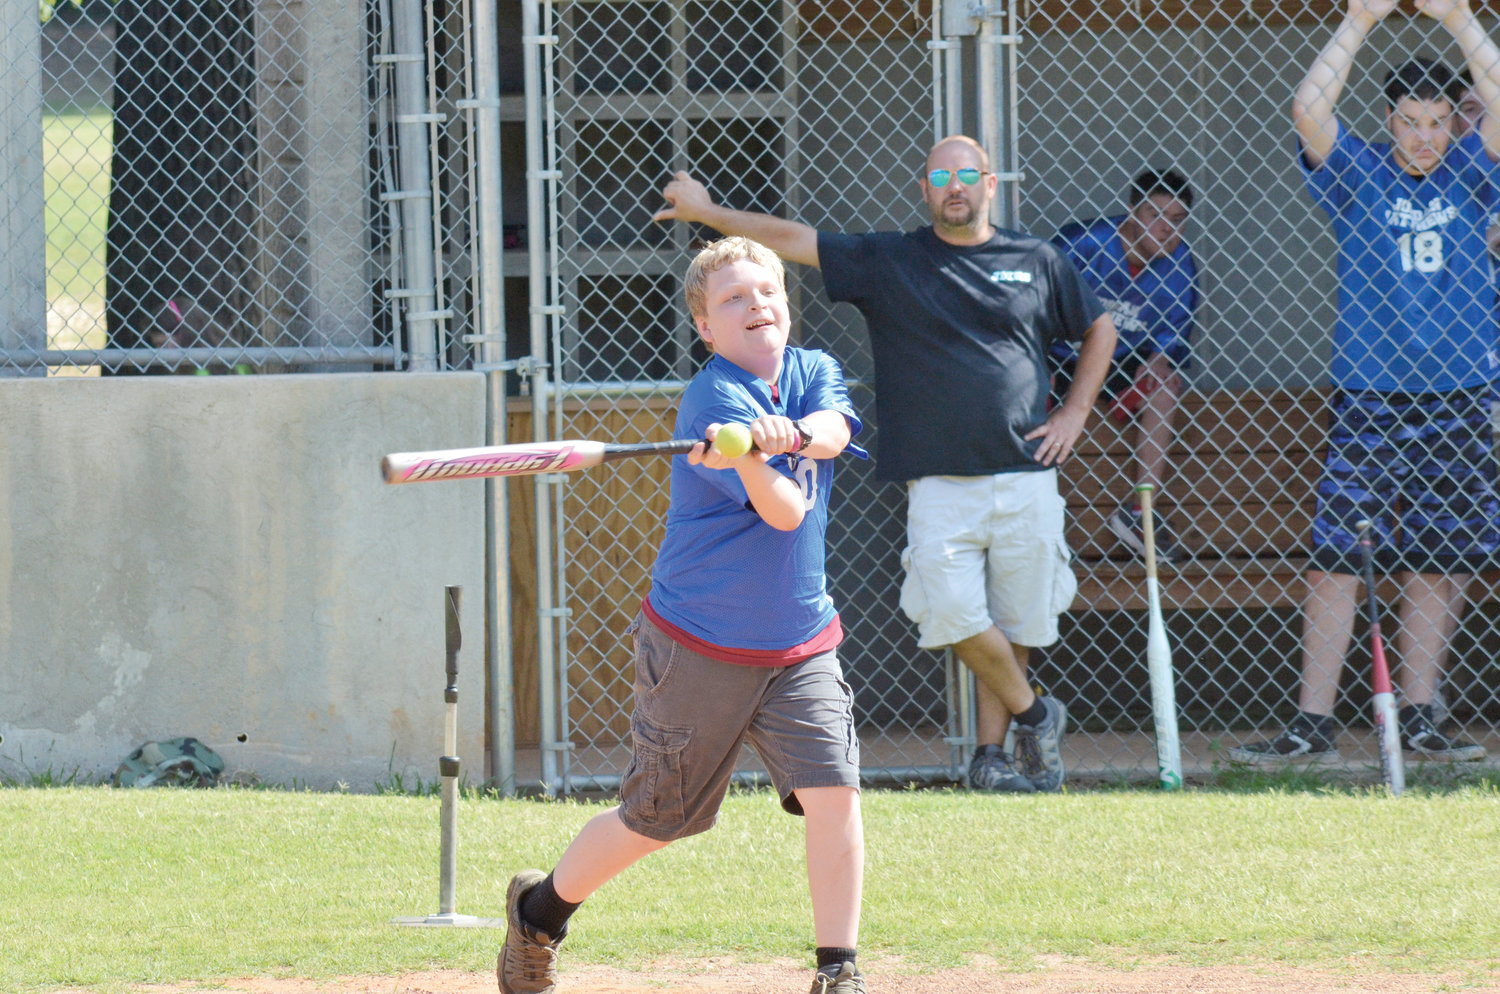 Jordan-Matthew's Nathan Allred gets a hit during the UNIFIED game against Northwood Friday. JM won the highly contested match, 21-20.